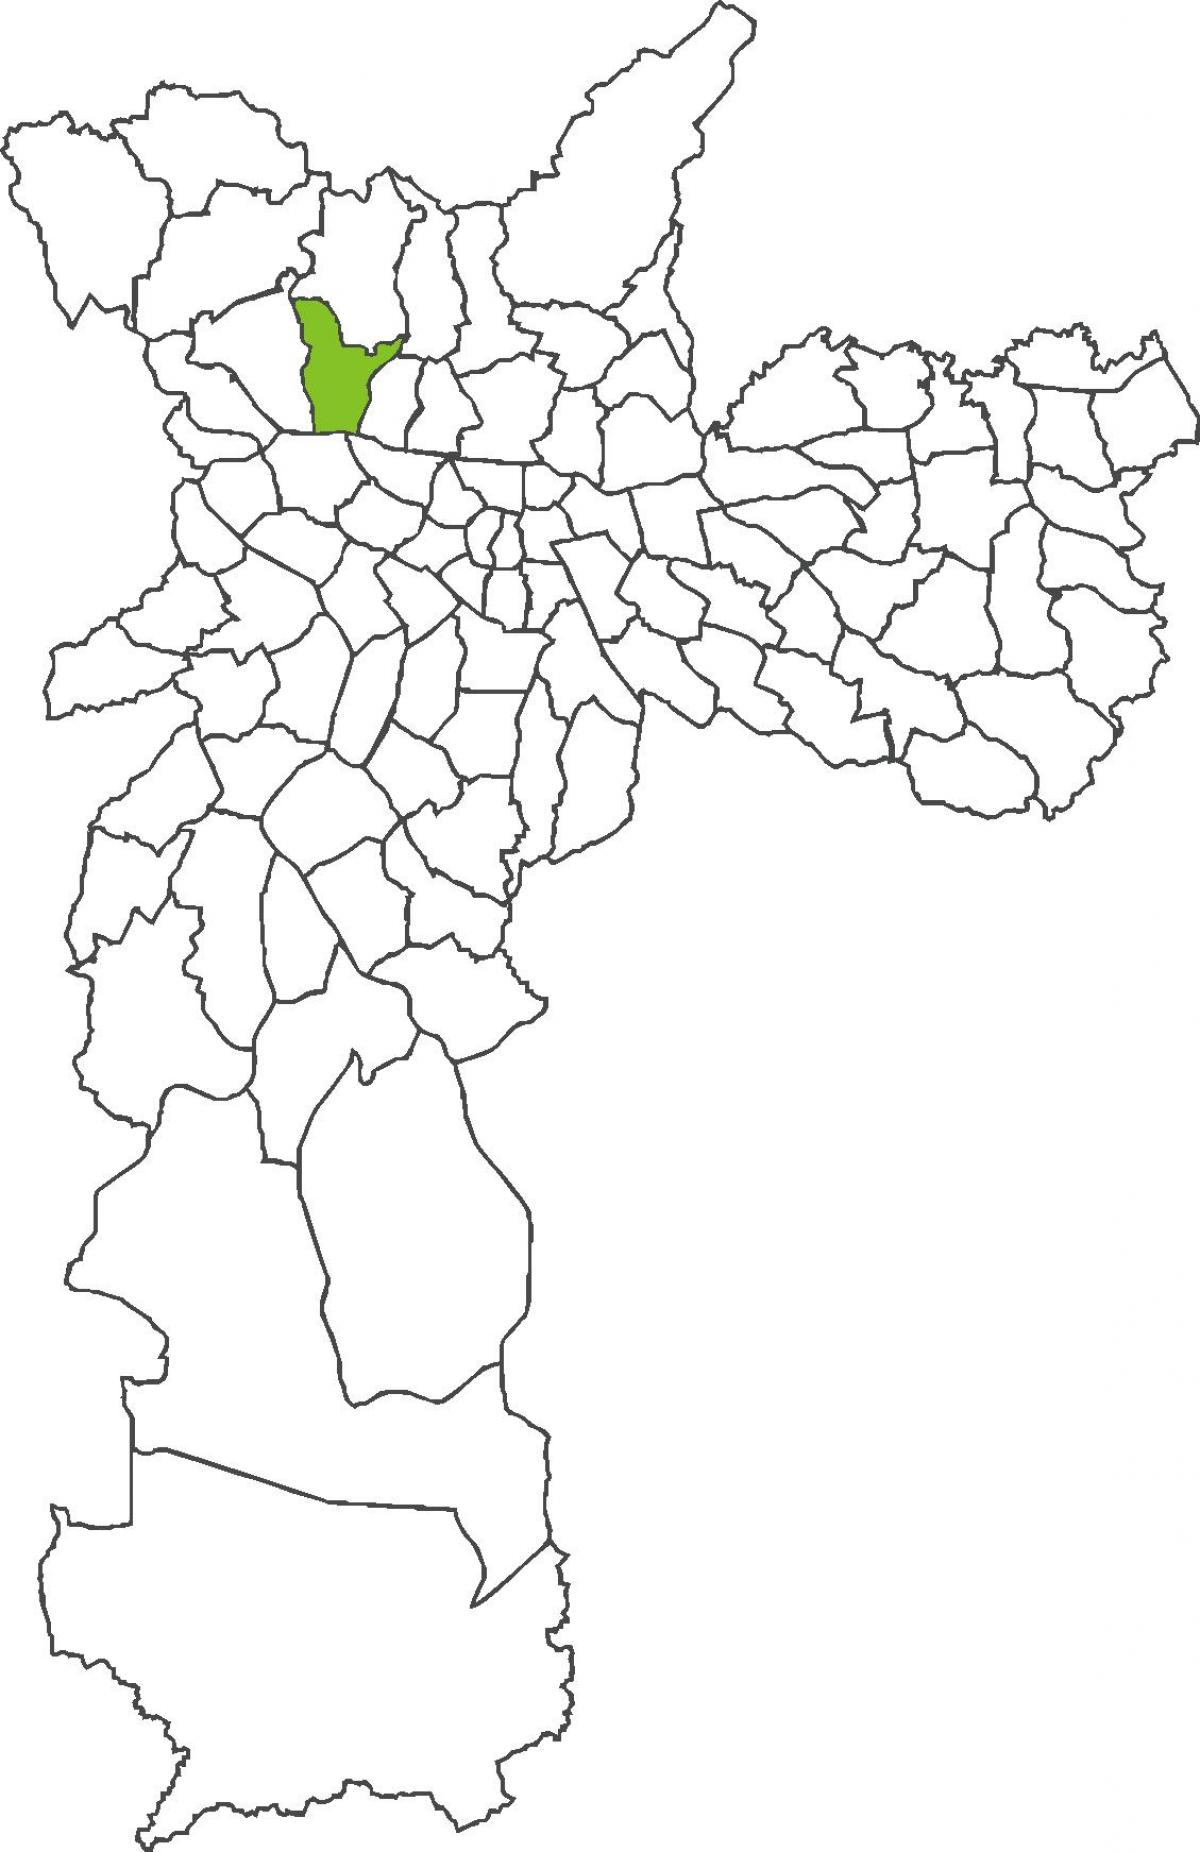 Map of Freguesia do Ó district